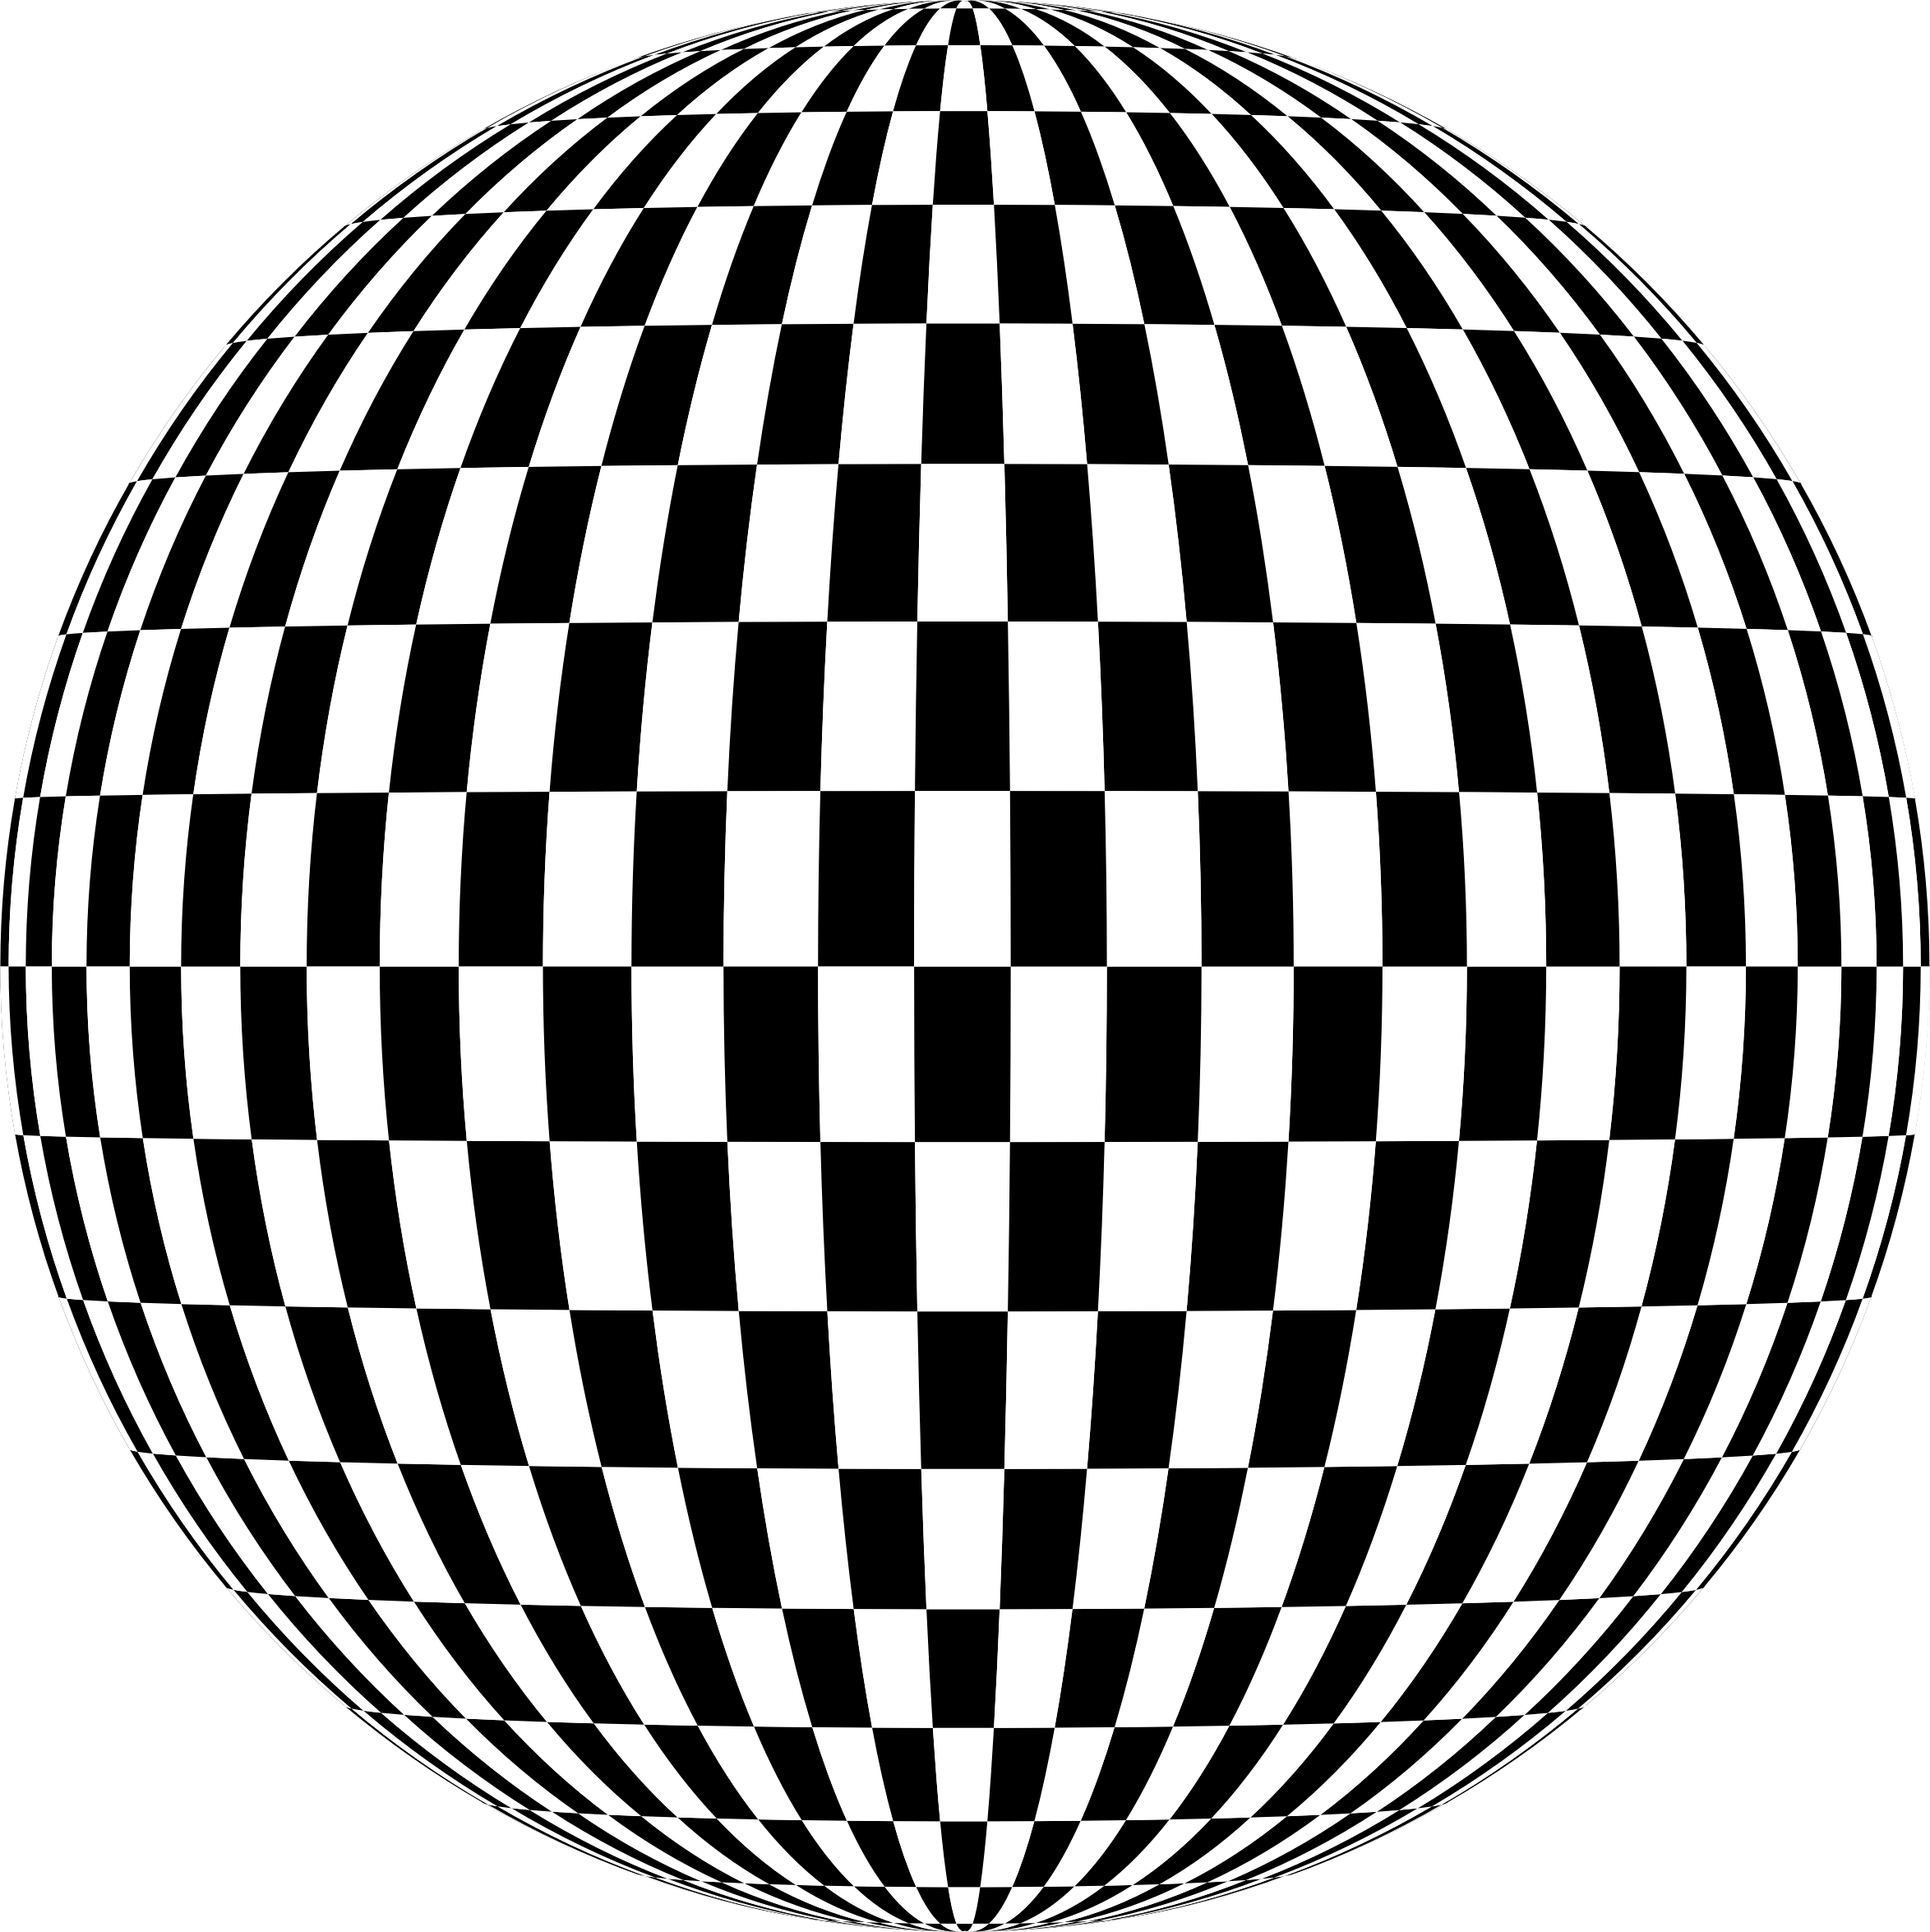 Checkered drawing at getdrawings. Race clipart checkerboard